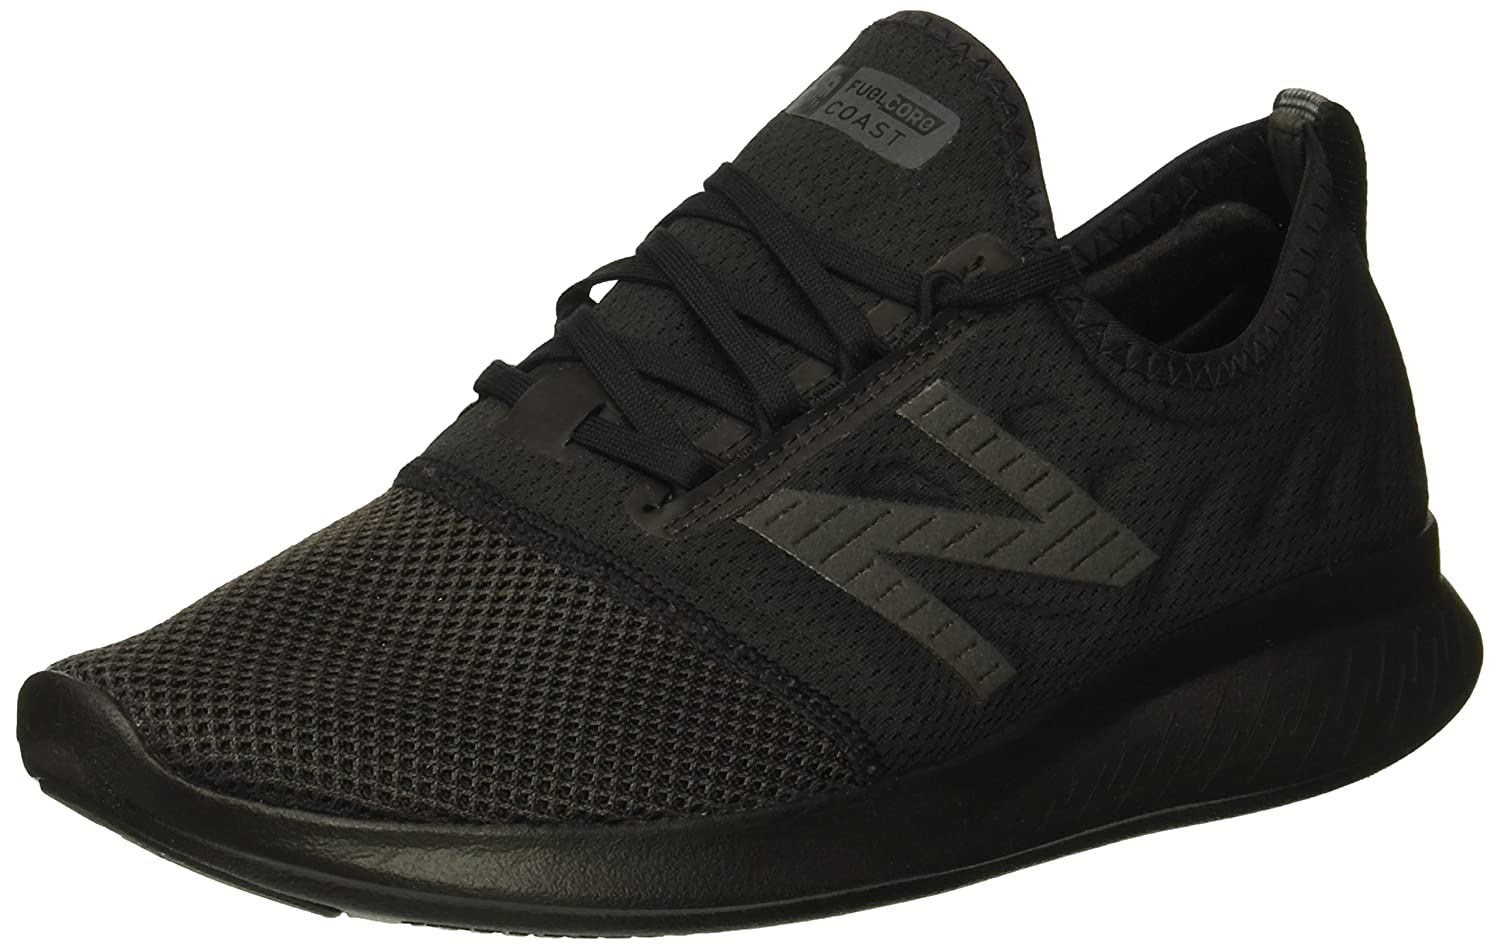 New Balance Women's Coast V4 FuelCore Running Shoe B075R7JN7V 7 D US|Black